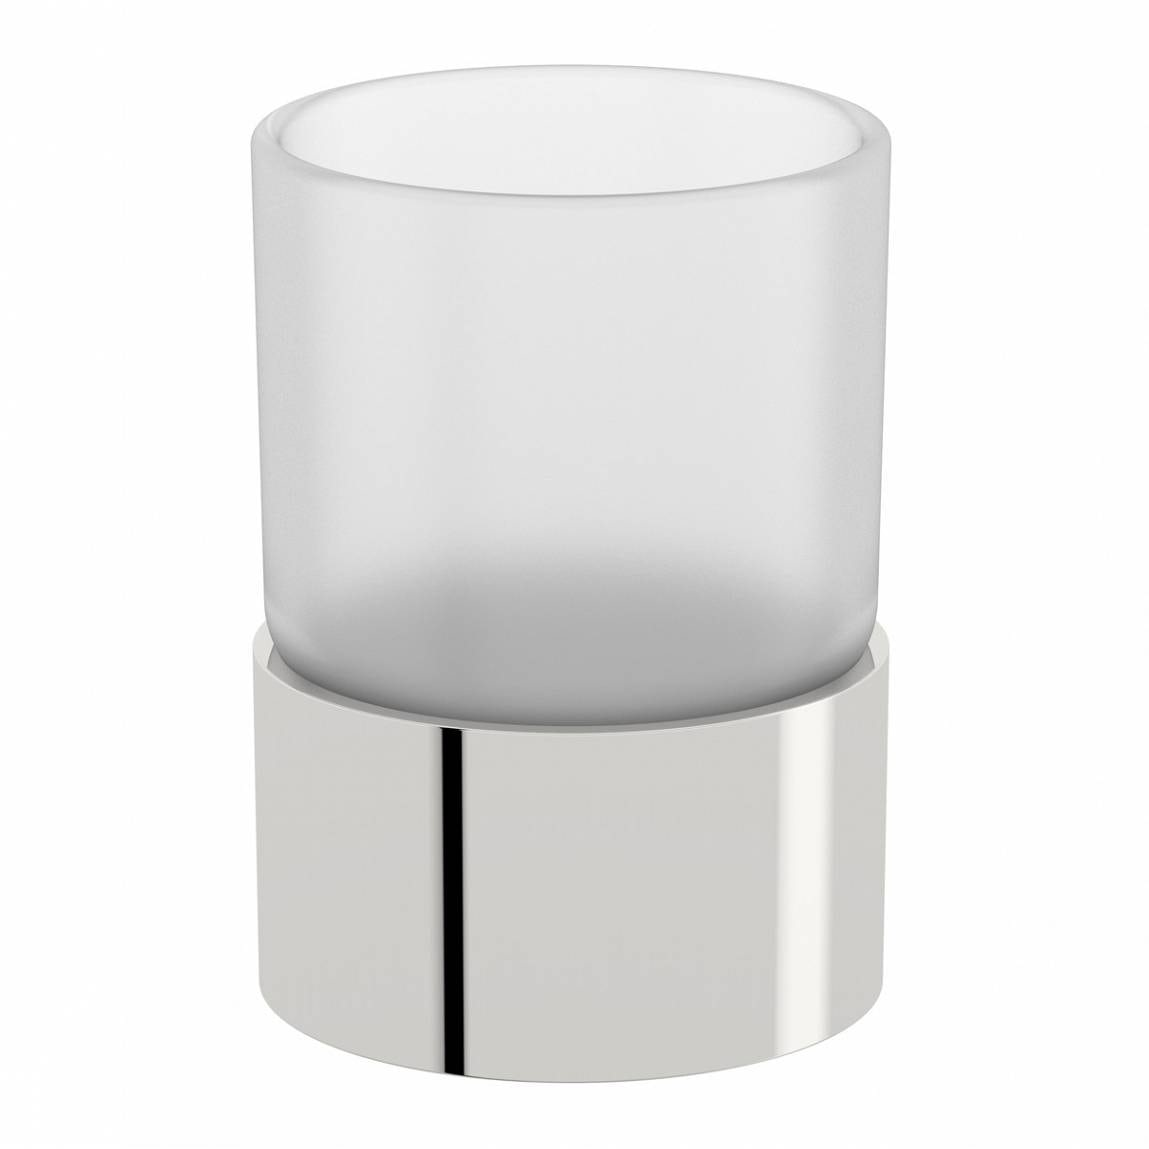 Orchard Options freestanding frosted glass tumbler